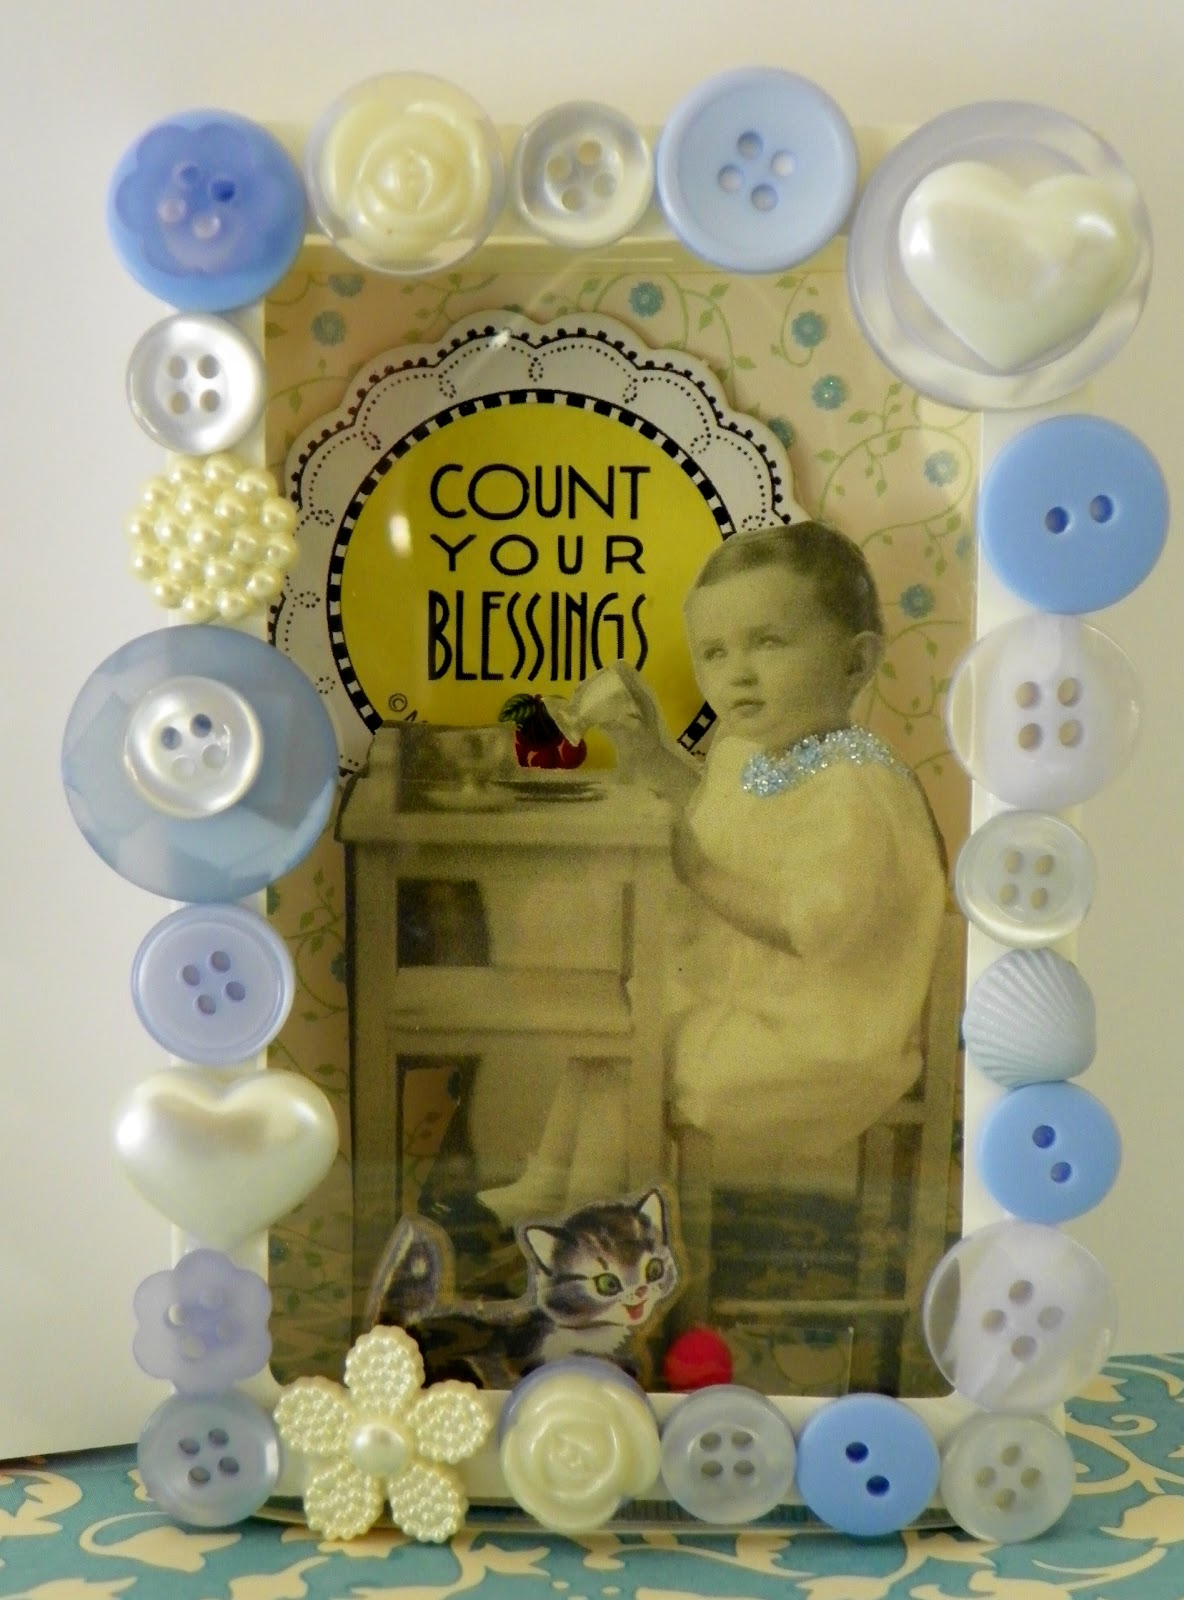 Count Your Blessings is Mary Engelbreit chipboard from one of those